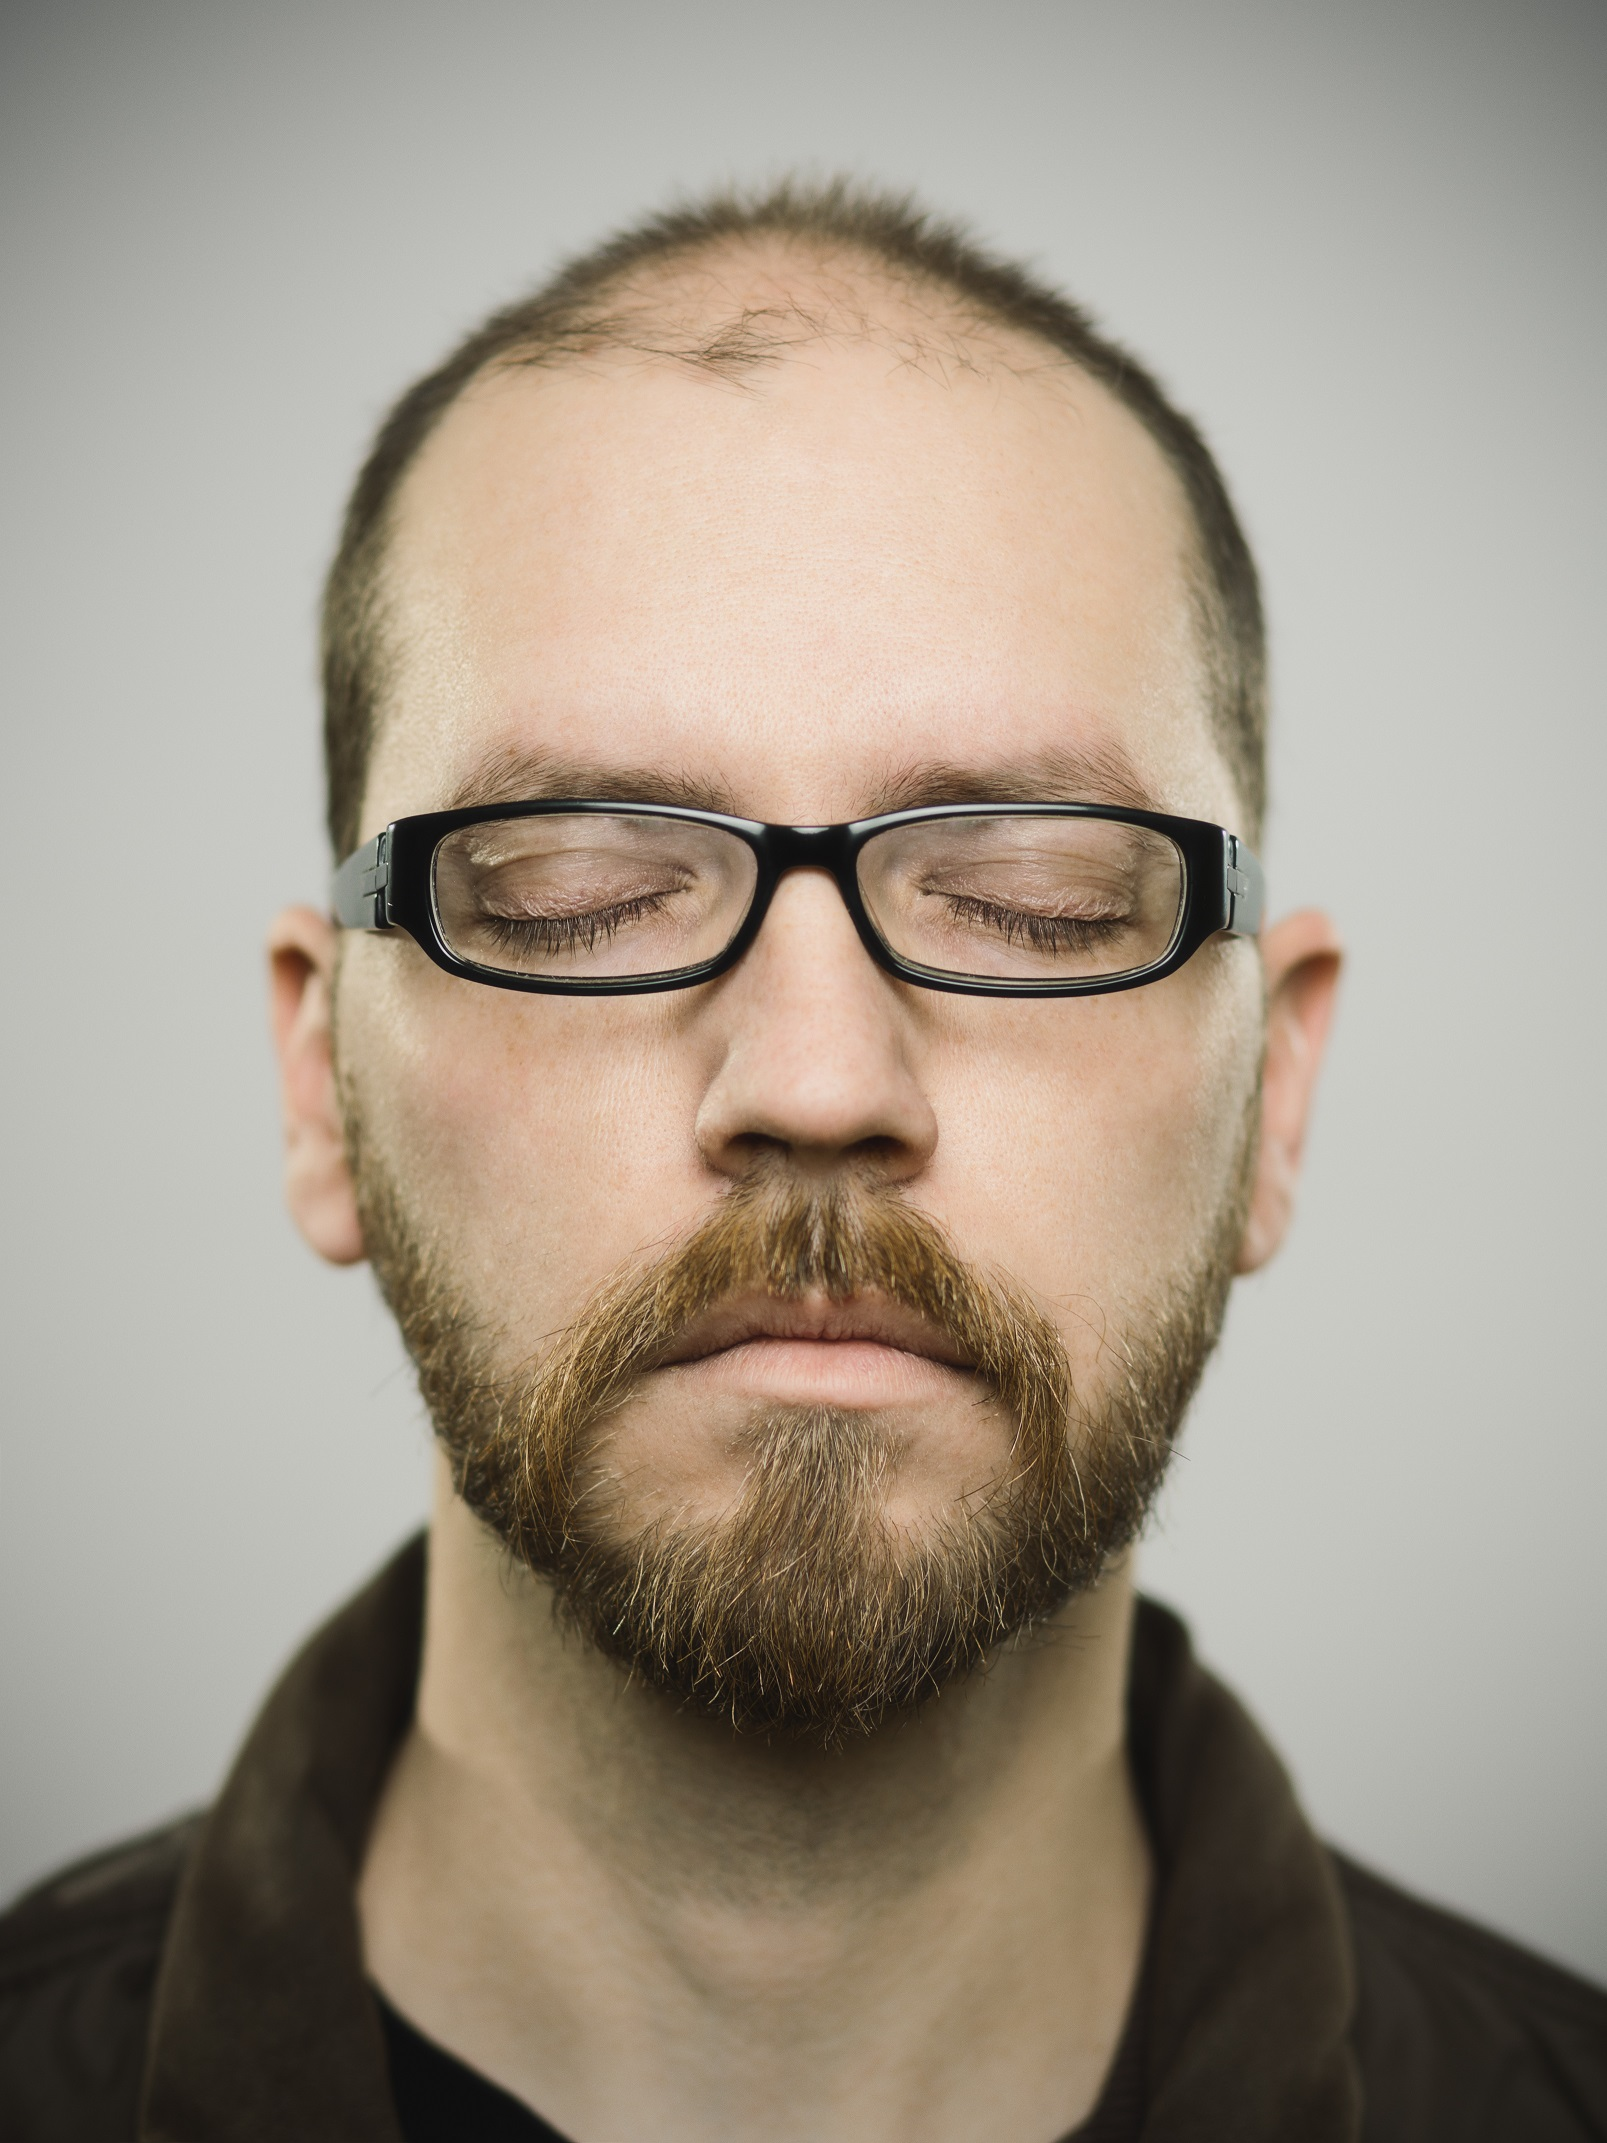 balding guy with glasses